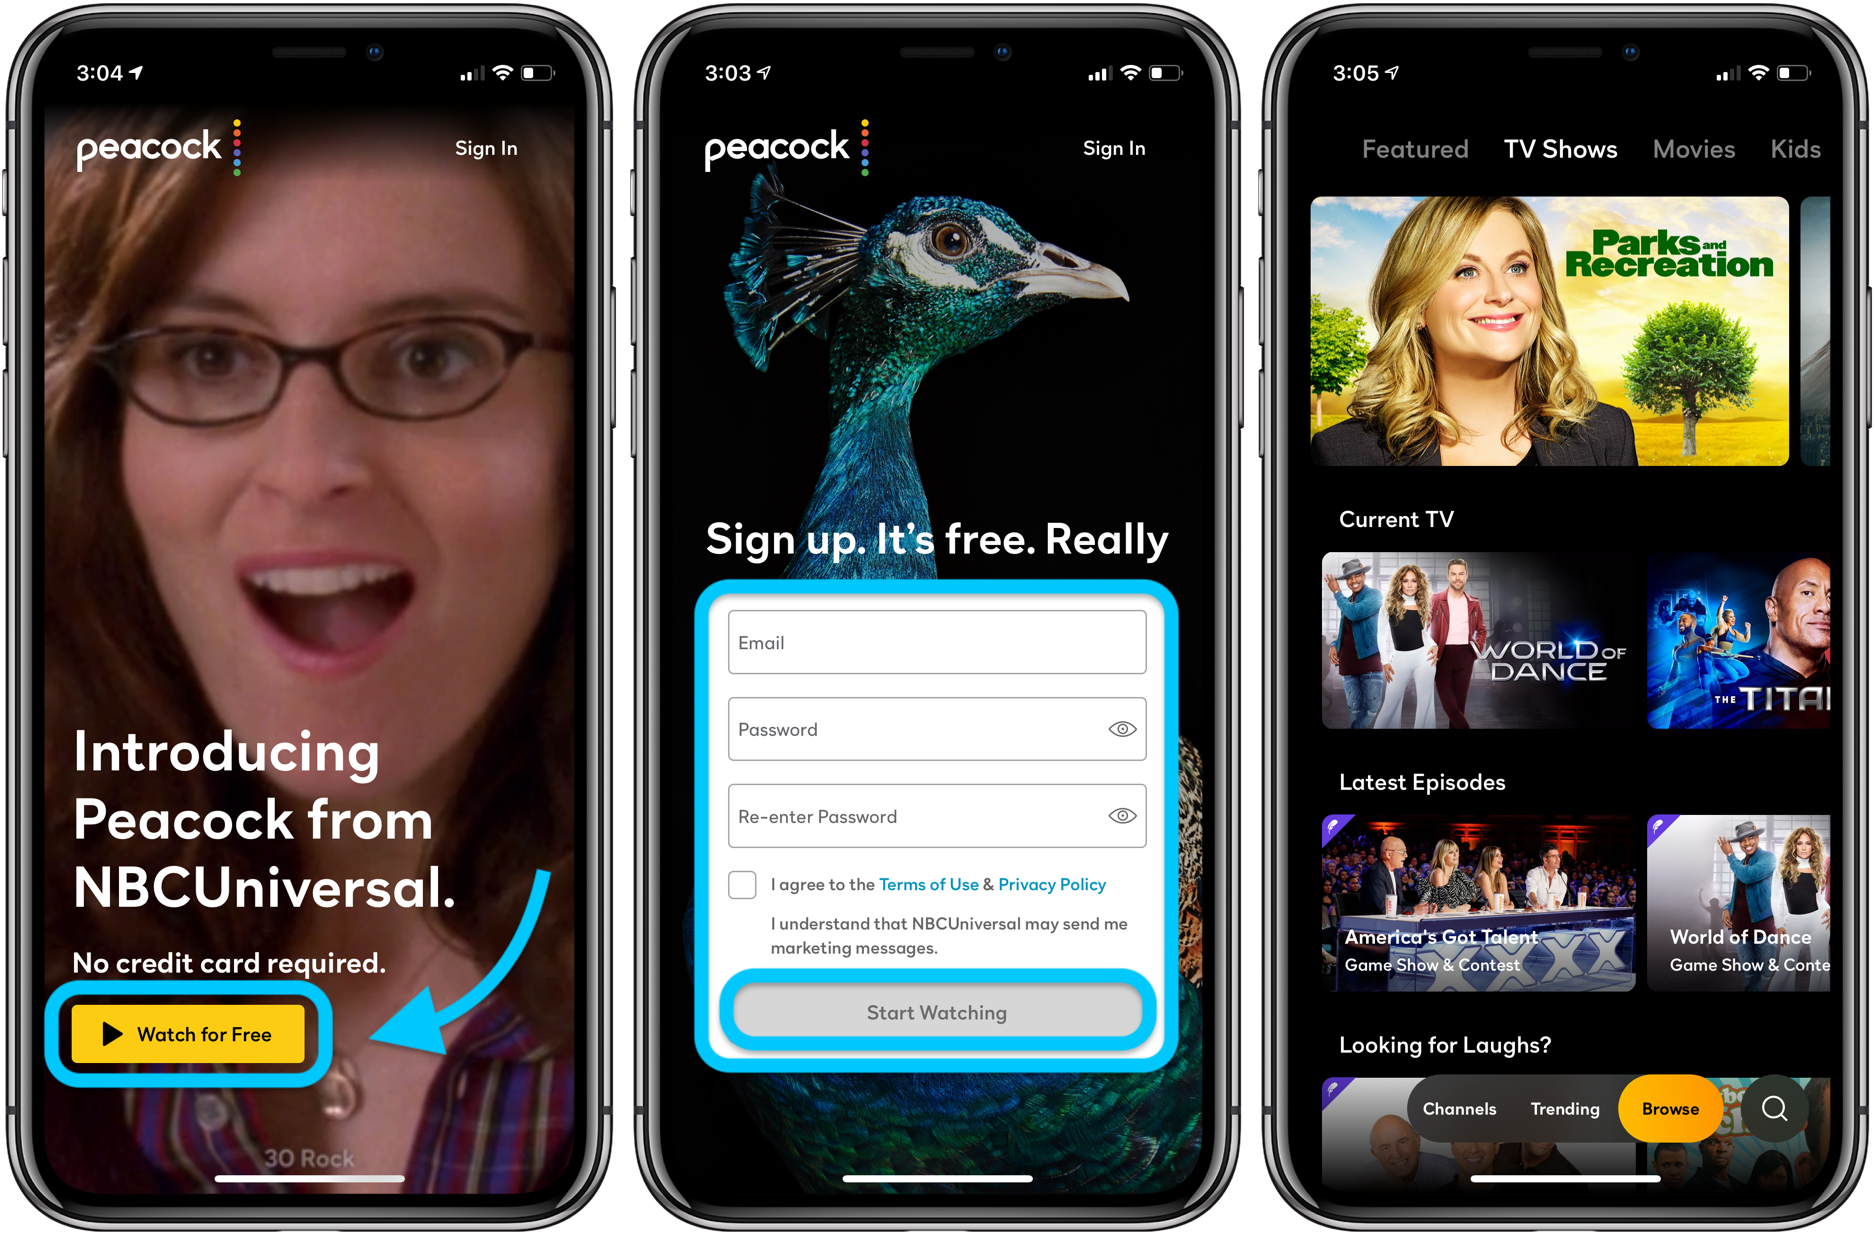 How to watch NBC Peacock for free on iPhone, Apple TV, iPad, more